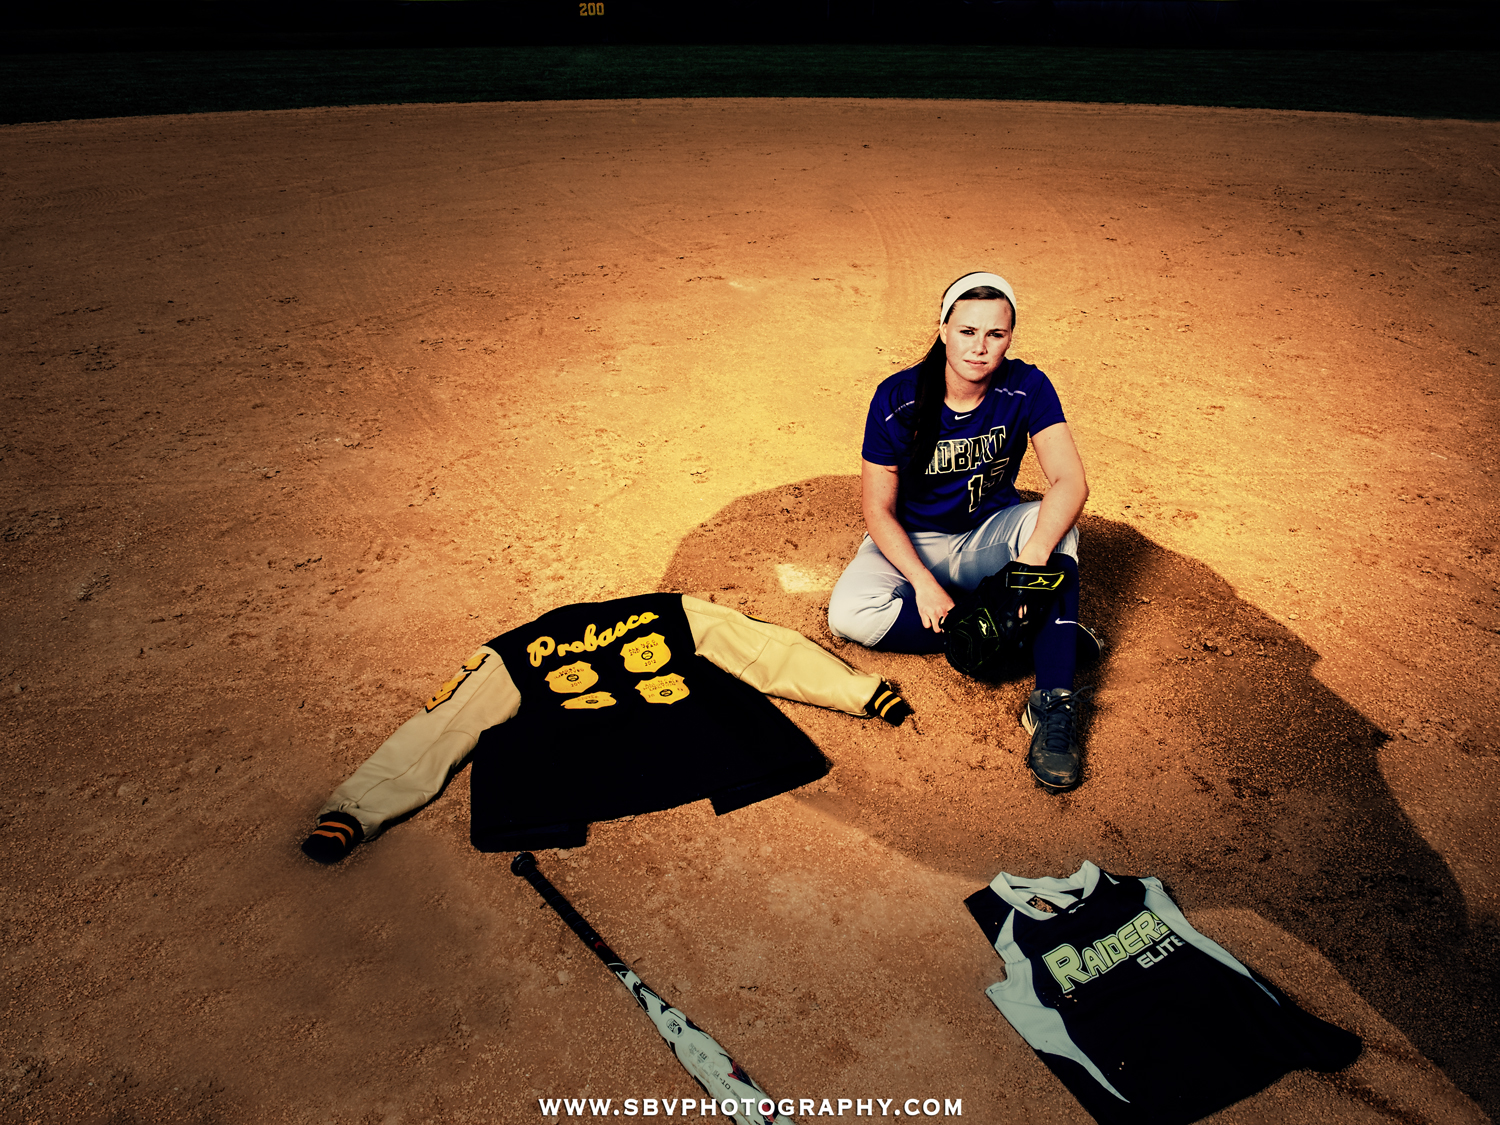 Hobart high school third base player poses for her senior picture on the pitcher's mound.